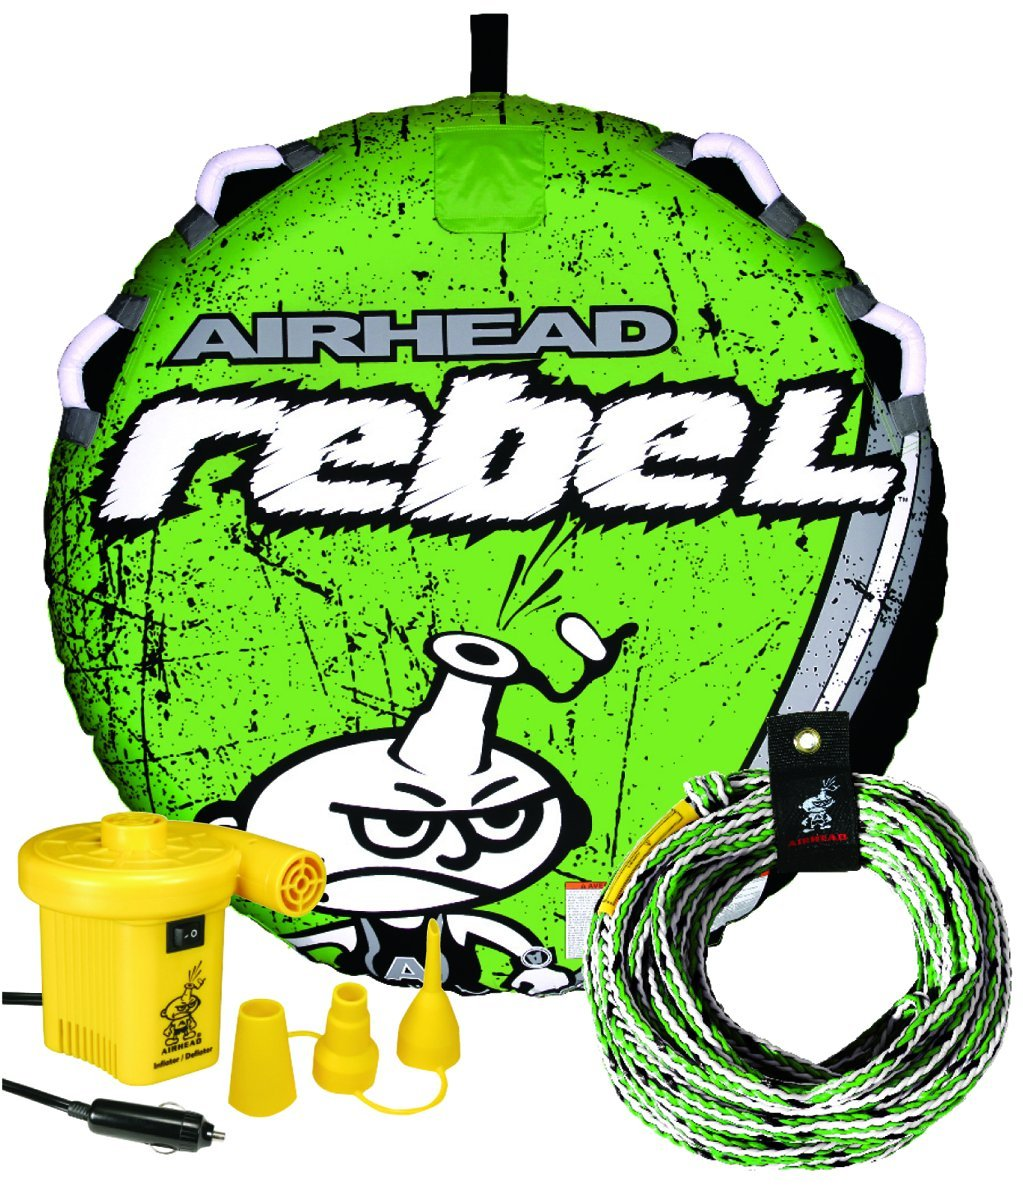 Airhead Rebel 54 Inch 1 Person Durable Red Towable Tube Kit w/Rope and 12V Pump